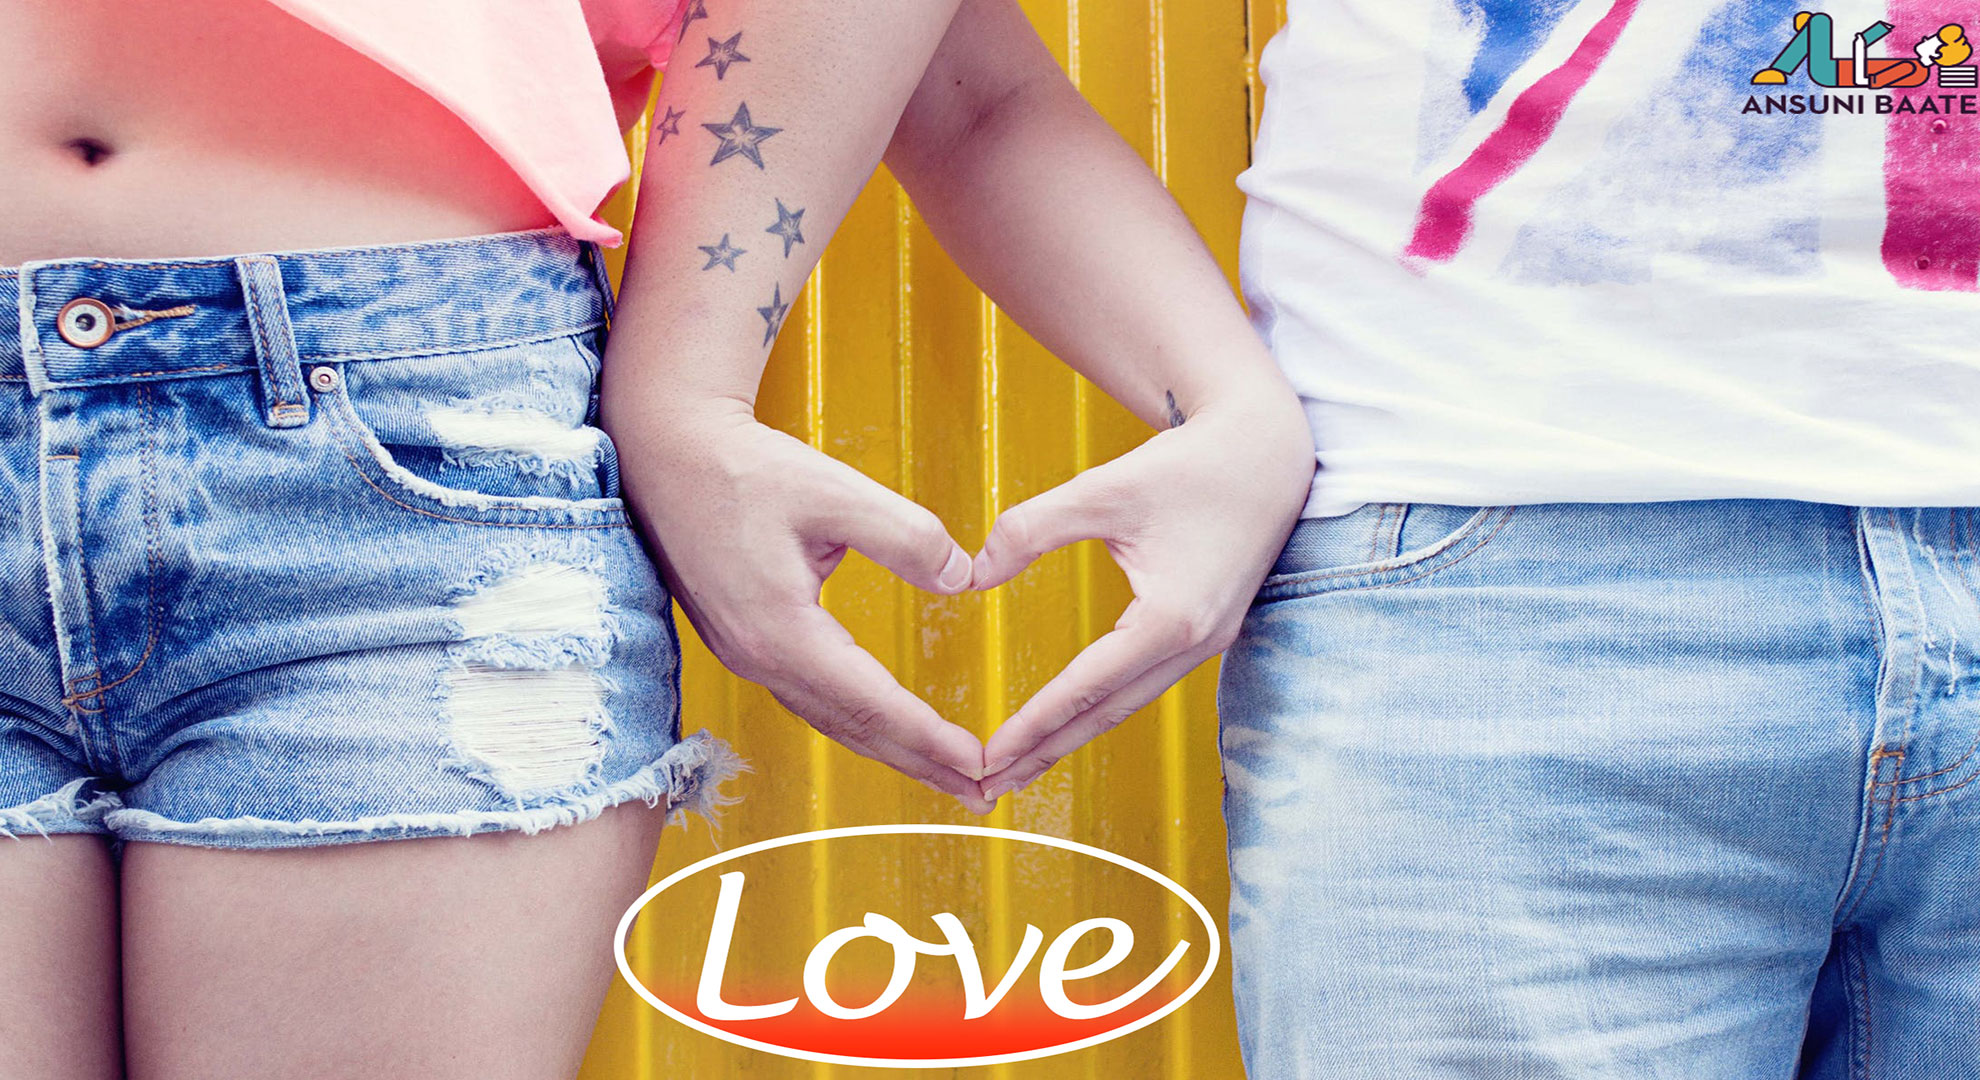 प्यार पर अनमोल विचार - Love Quotes In Hindi